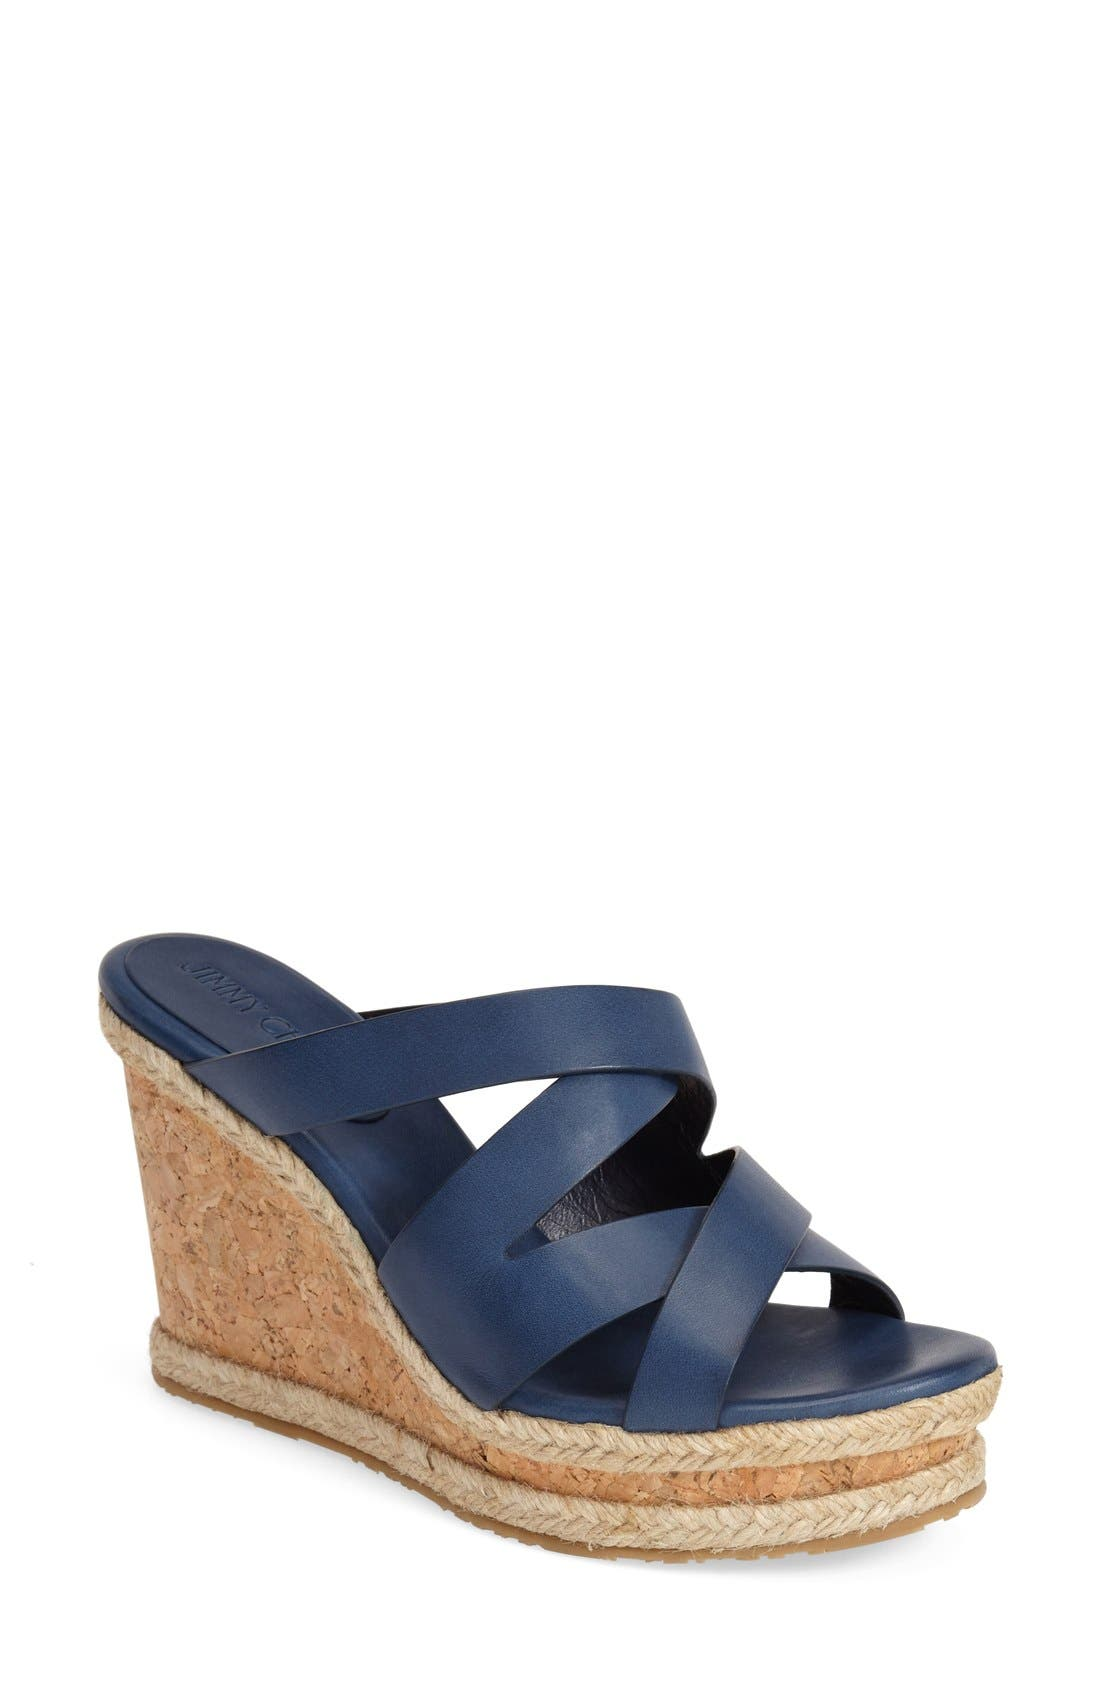 'Prisma' Leather Wedge Sandal,                         Main,                         color, Navy